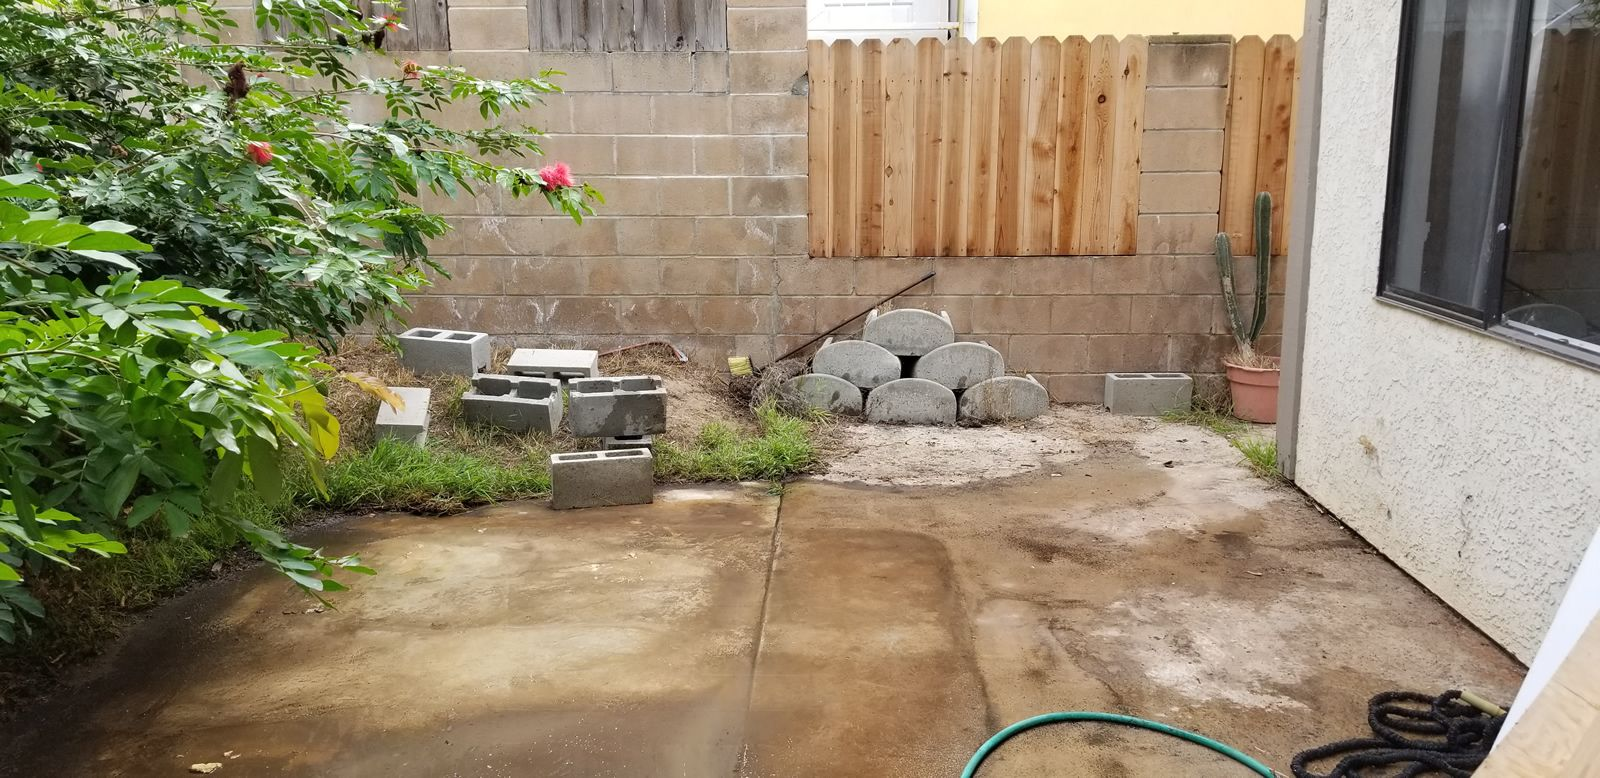 Above ground hot tub removal in Temecula CA after